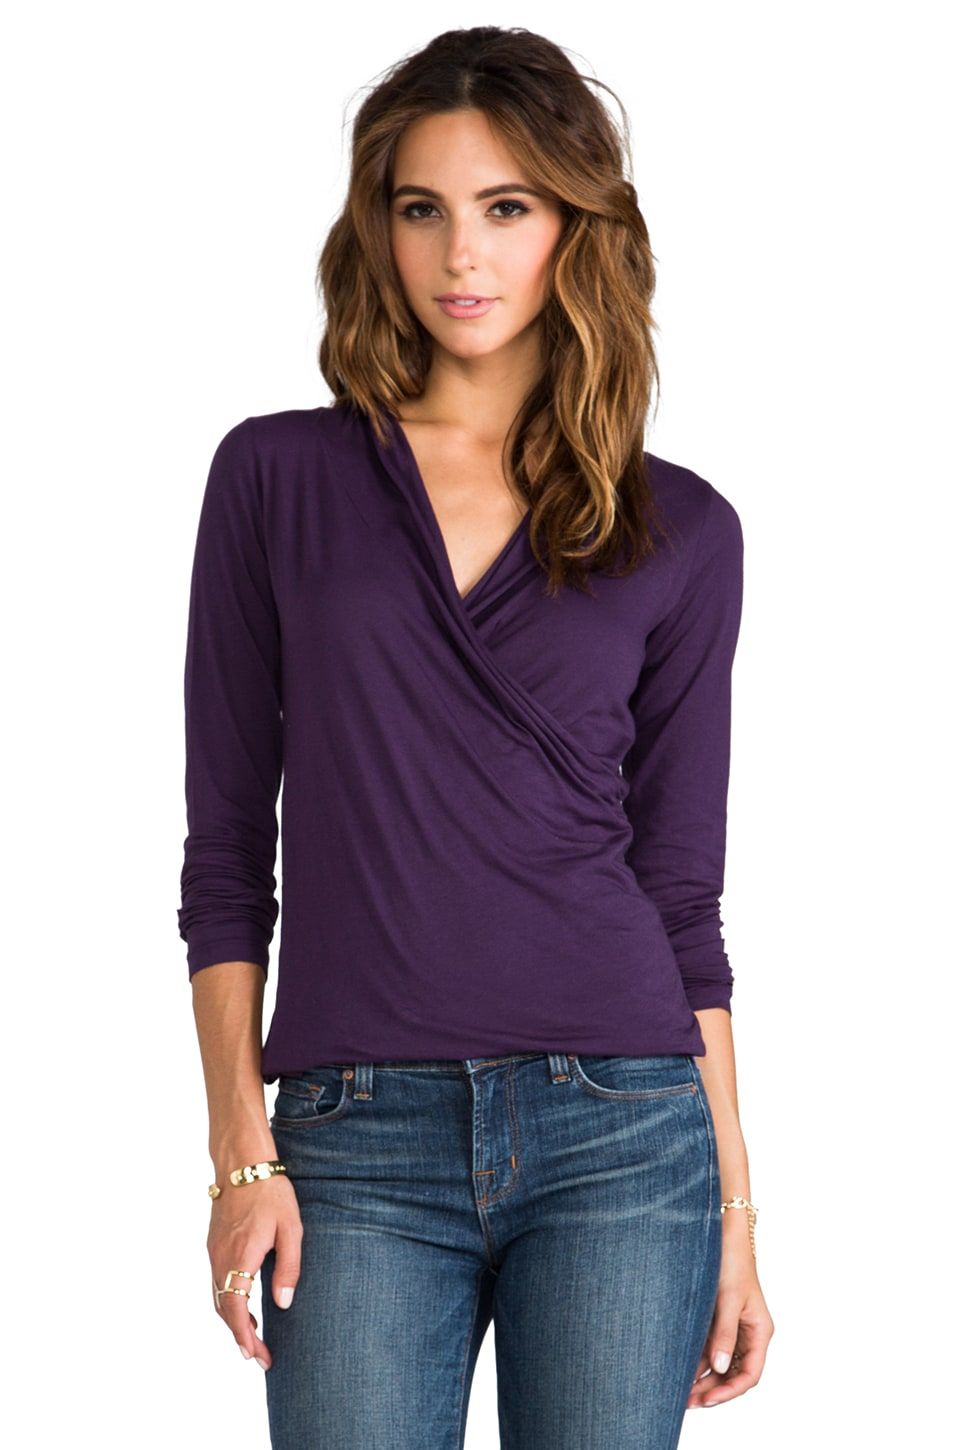 Velvet by Graham & Spencer Gauzy Whisper Meri Wrap Top in Loubelia